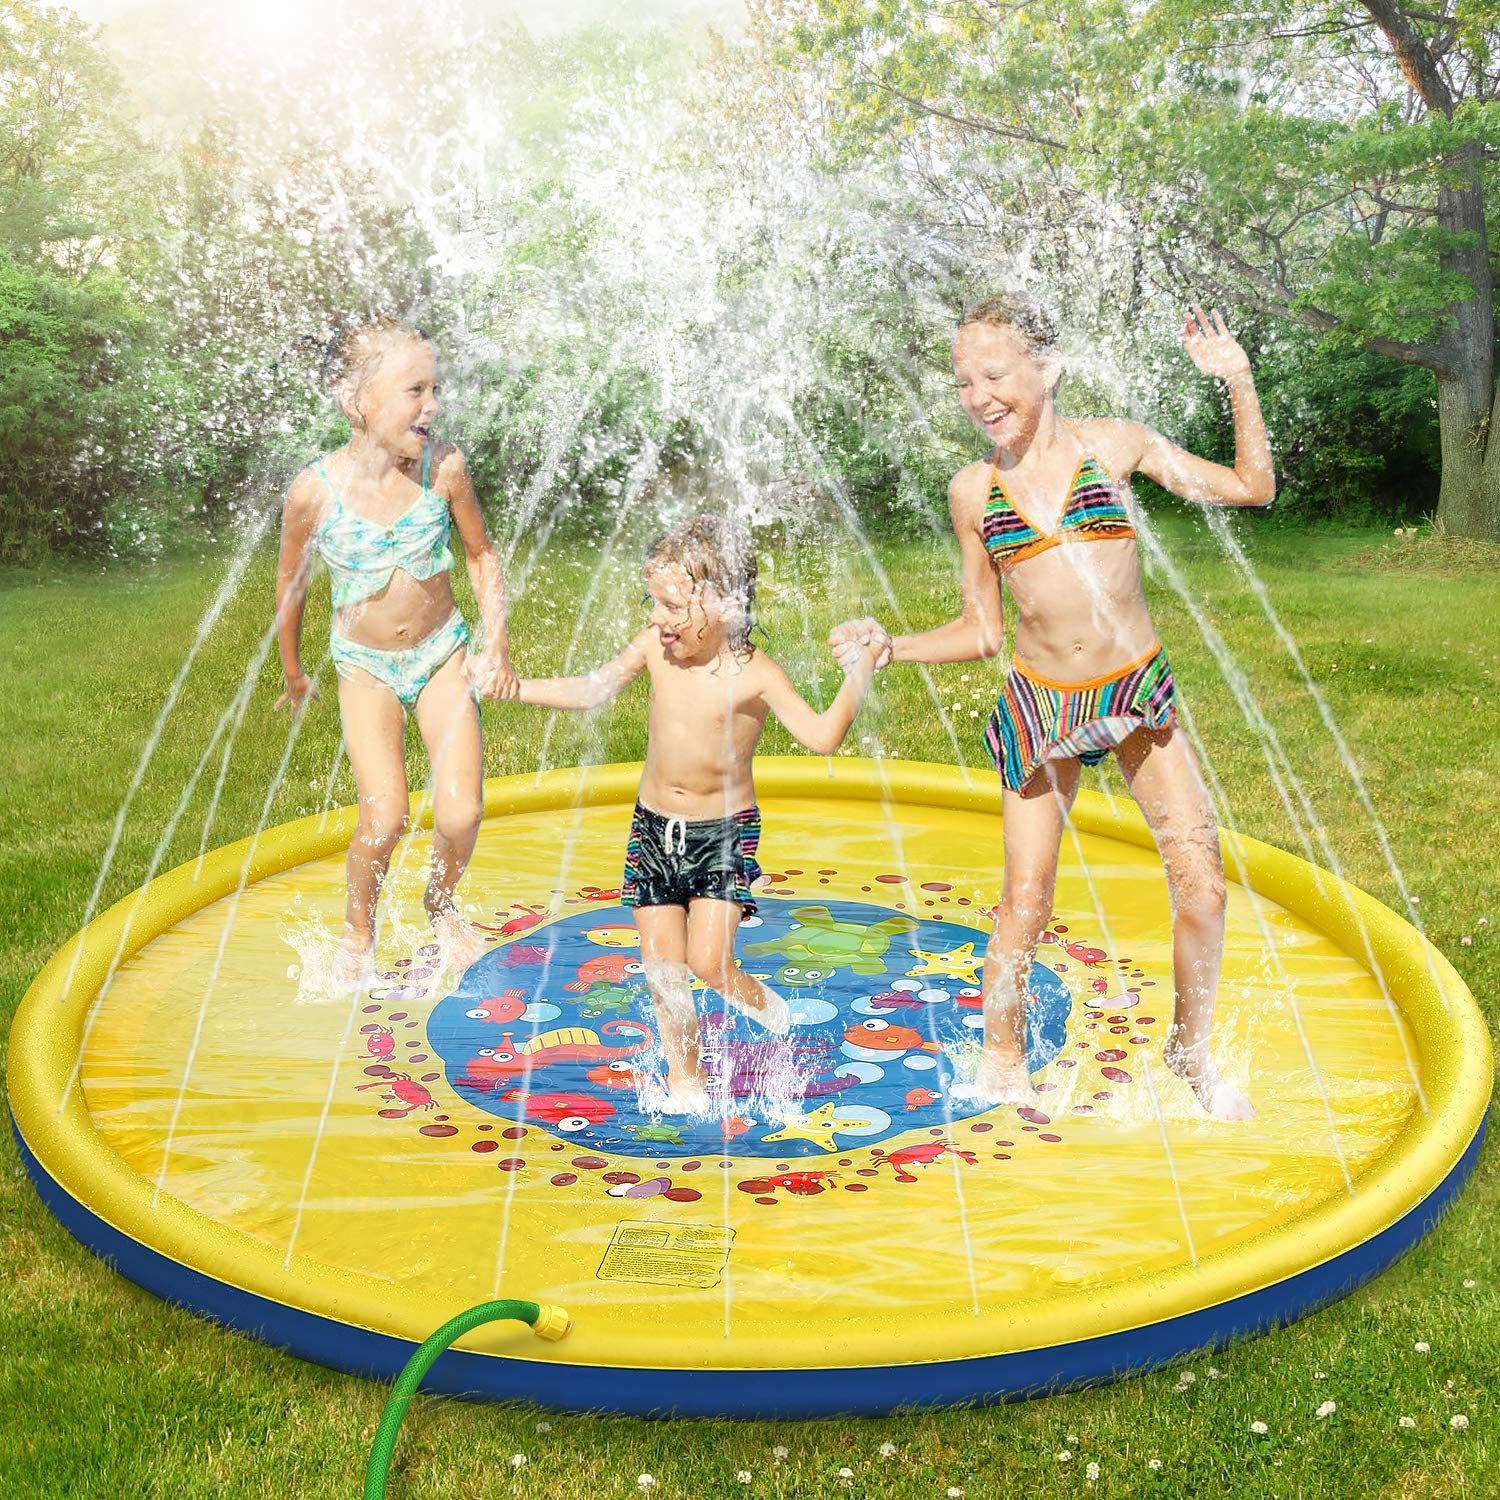 Splash Pad, 69 Inches No More Burst Sprinkle and Splash Play Mat Sprinkler for Kids Boys Girls Fun Splash Play Mat Summer Outdoor Sprinkler Pad Party Water Toys Extra Large Children's Sprinkler Pool by tomser (Image #1)